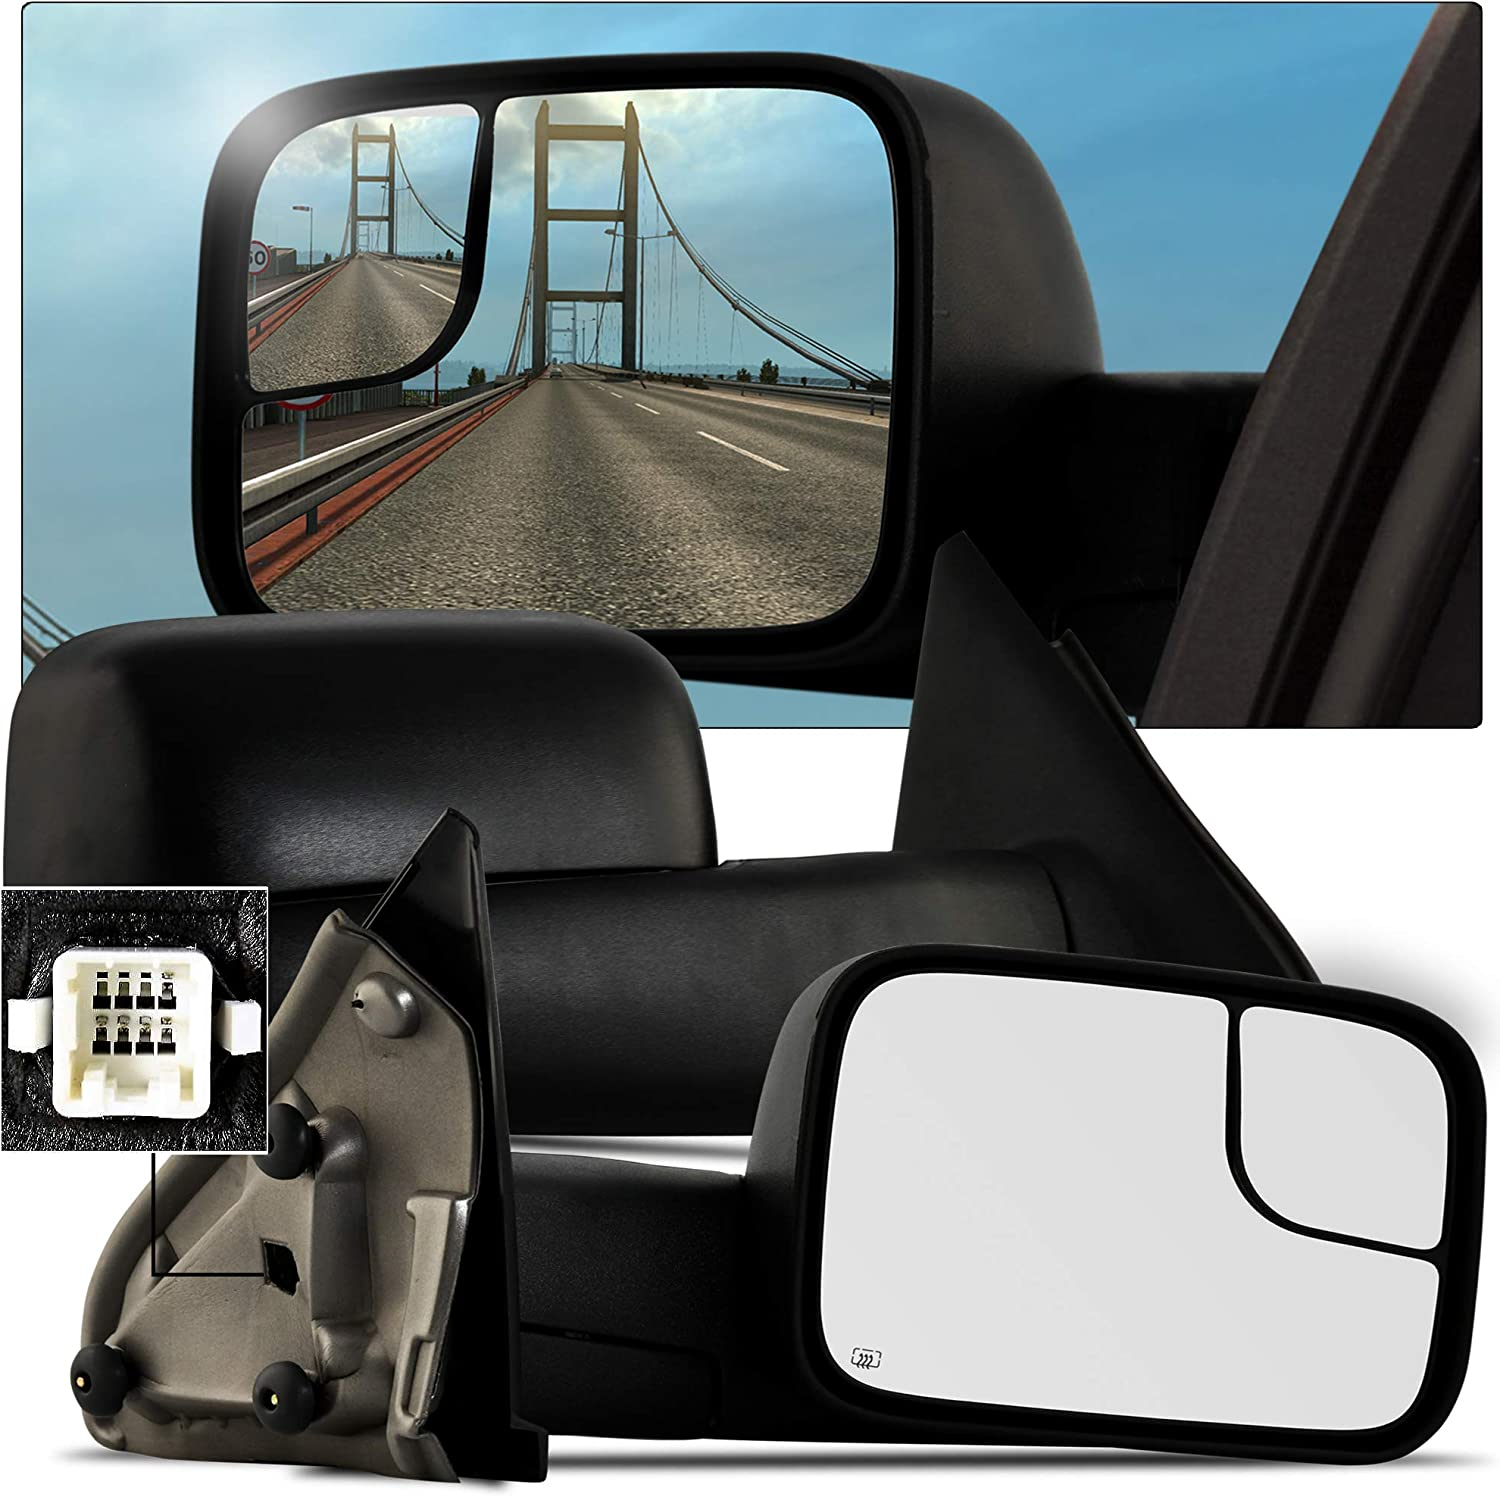 ECCPP Towing Mirrors Pair Set for 2003-2008 Dodge Ram 1500 2500 3500 Truck Power Heated Black Manual Side View Mirrors